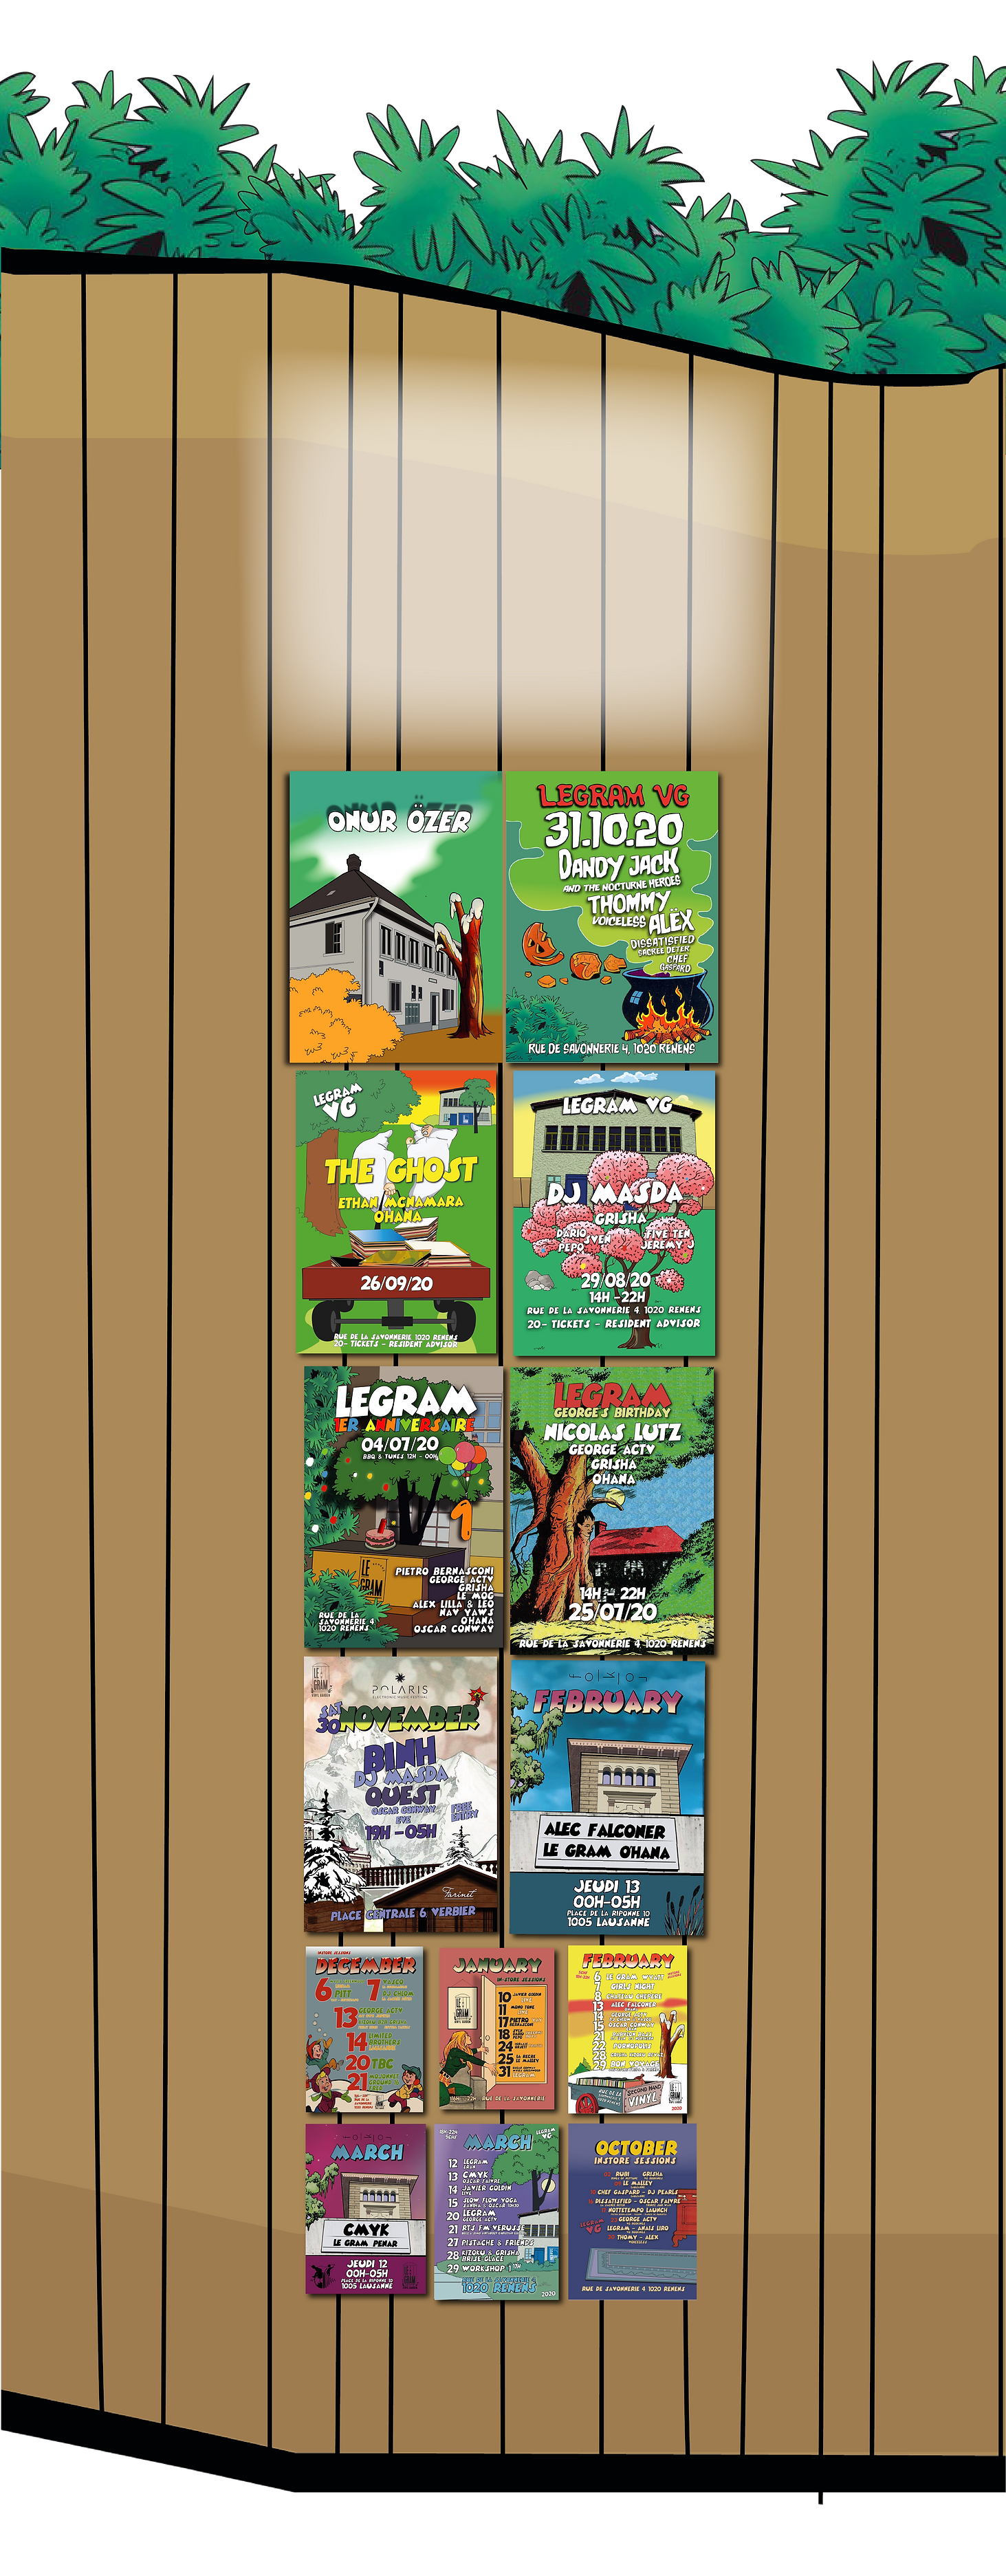 website_posters on fense copy.png